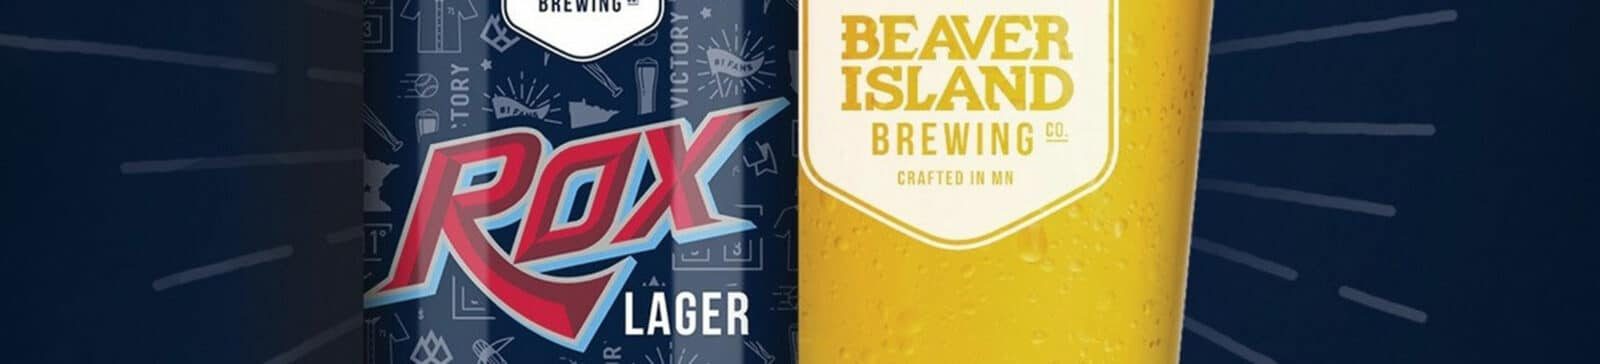 Rox Lager by Beaver Island header